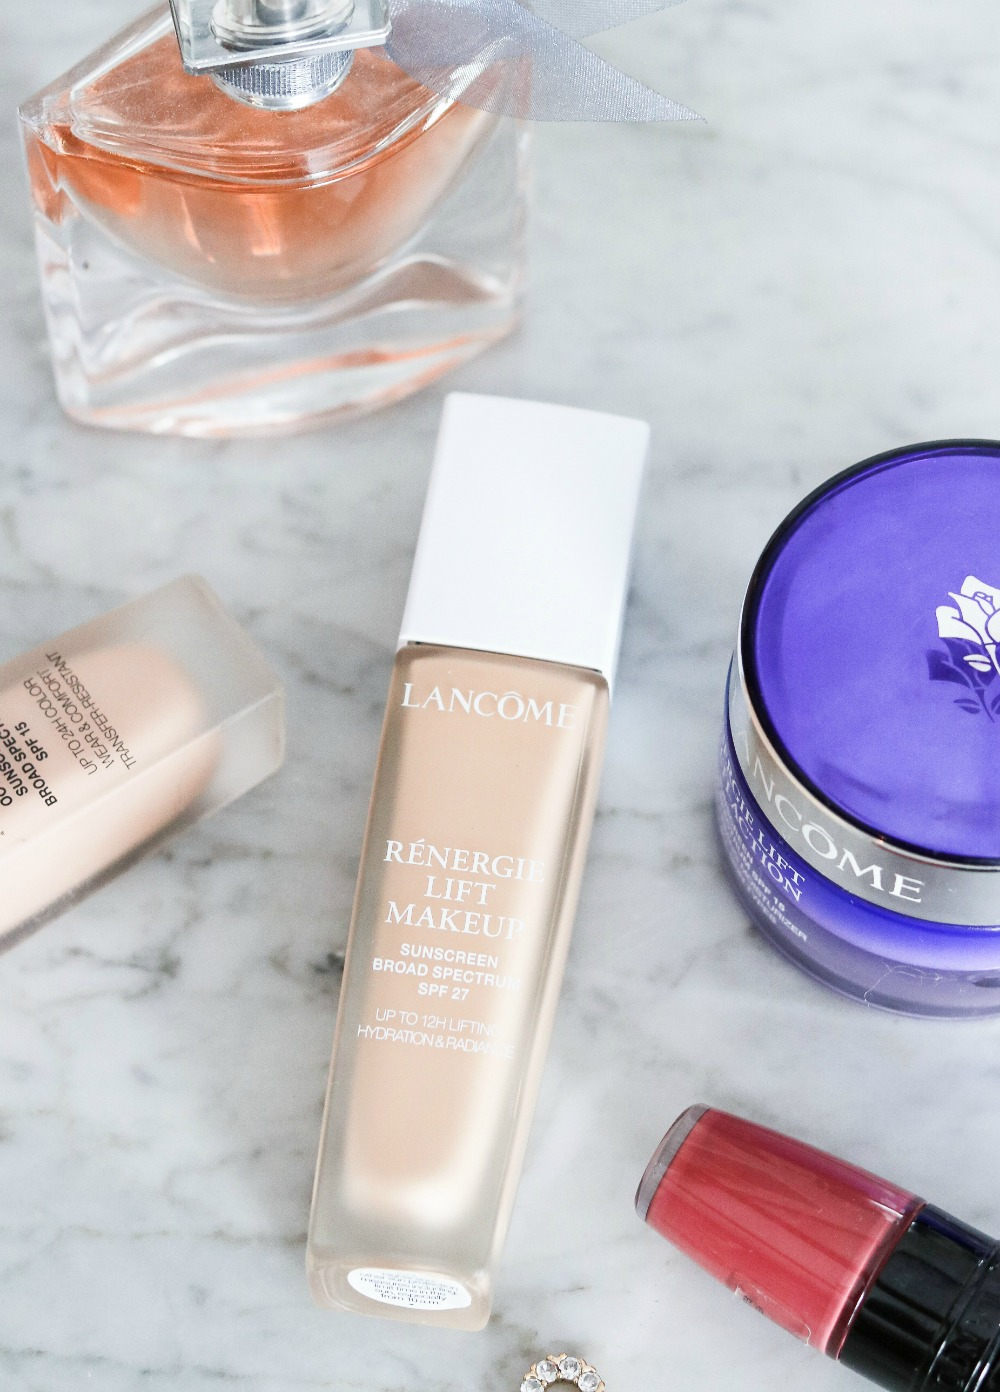 Lancome Renergie Lift Foundation Review I DreaminLace.com